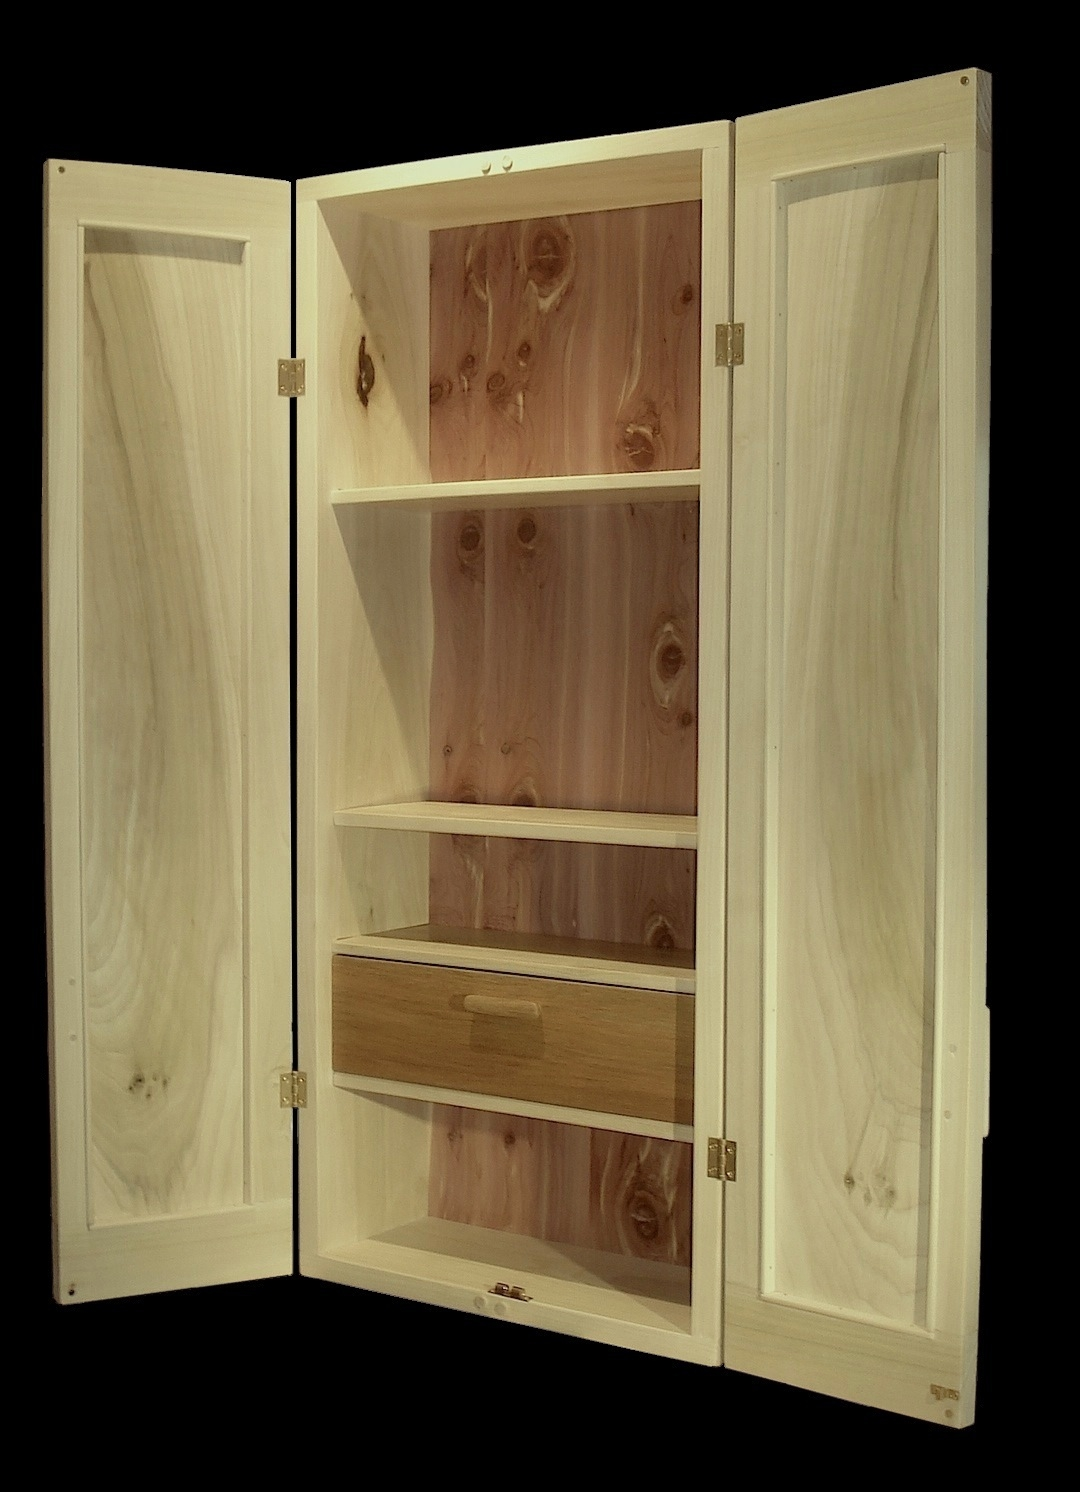 unfinished wood storage cabinets. unfinished solid wood furniture storage cabinets laura williams - blogger